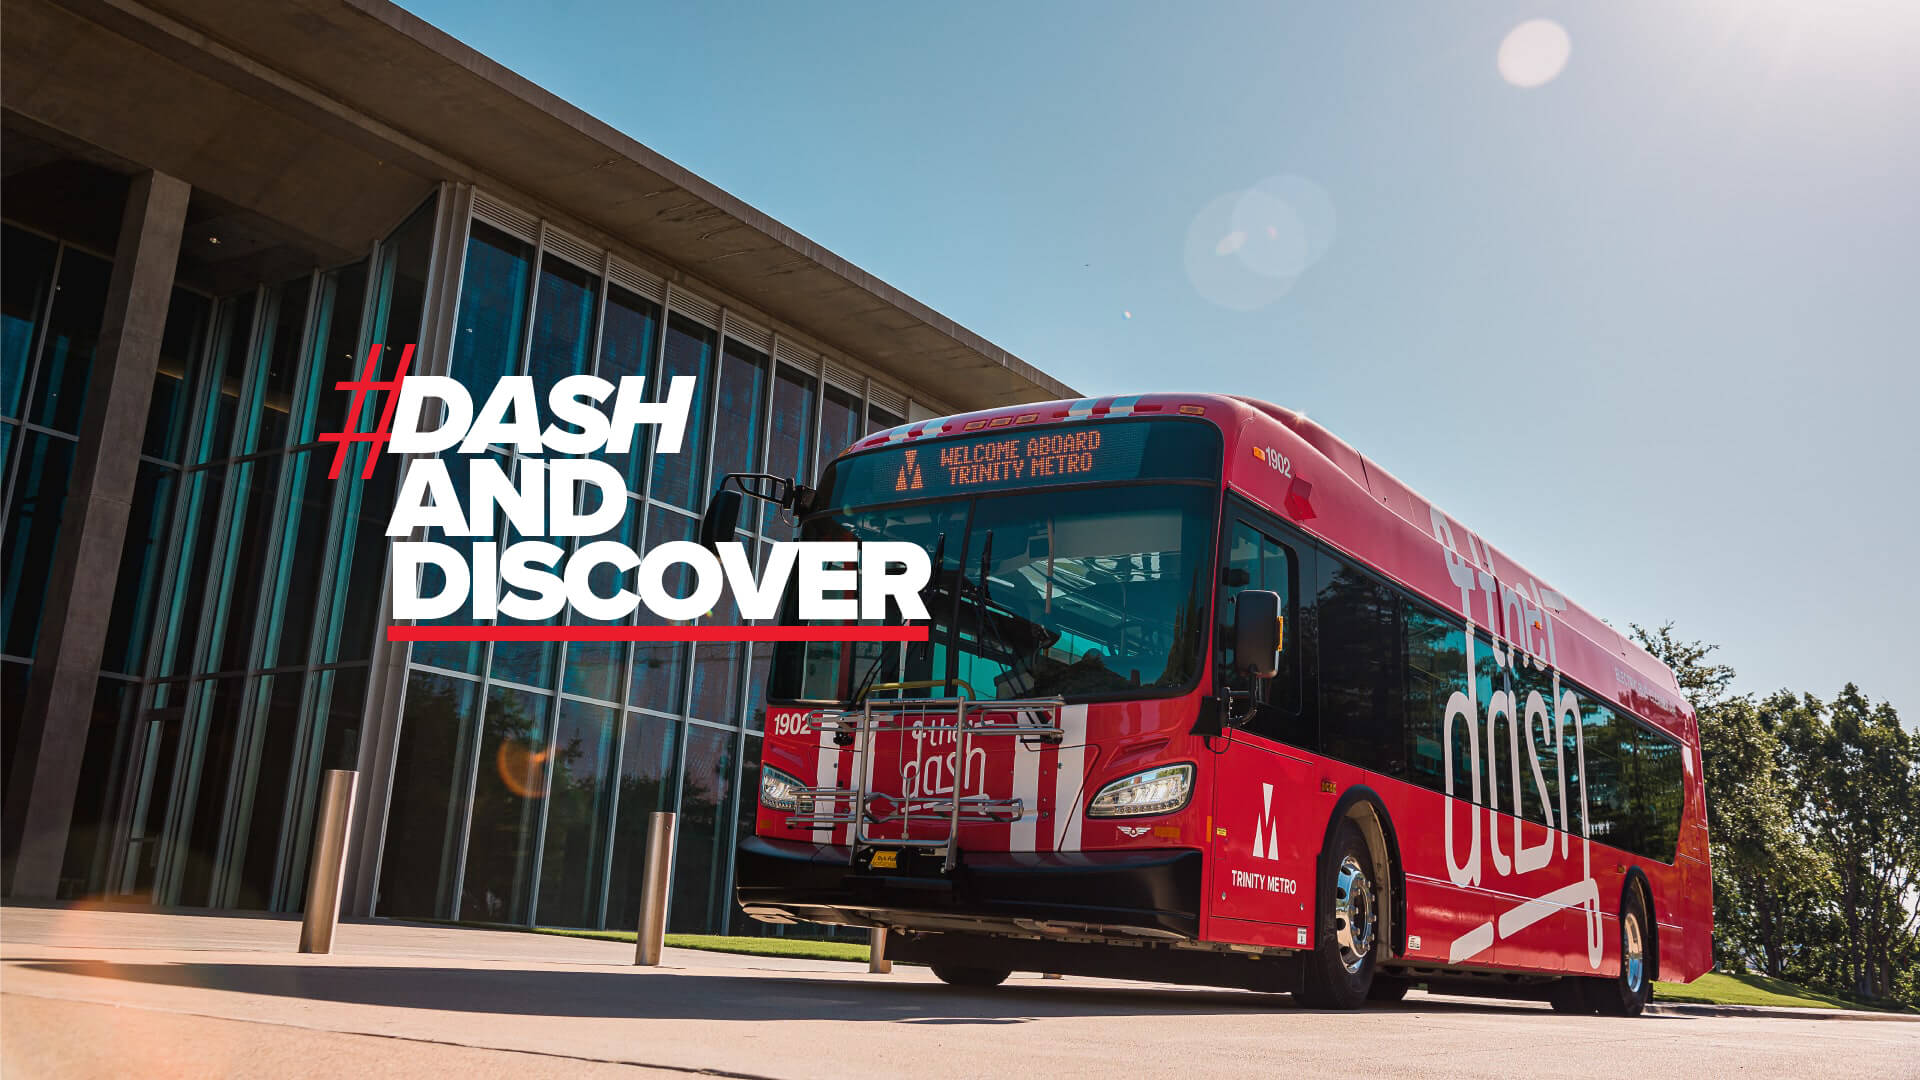 The Dash Bus with text image of the hashtag dash and discover